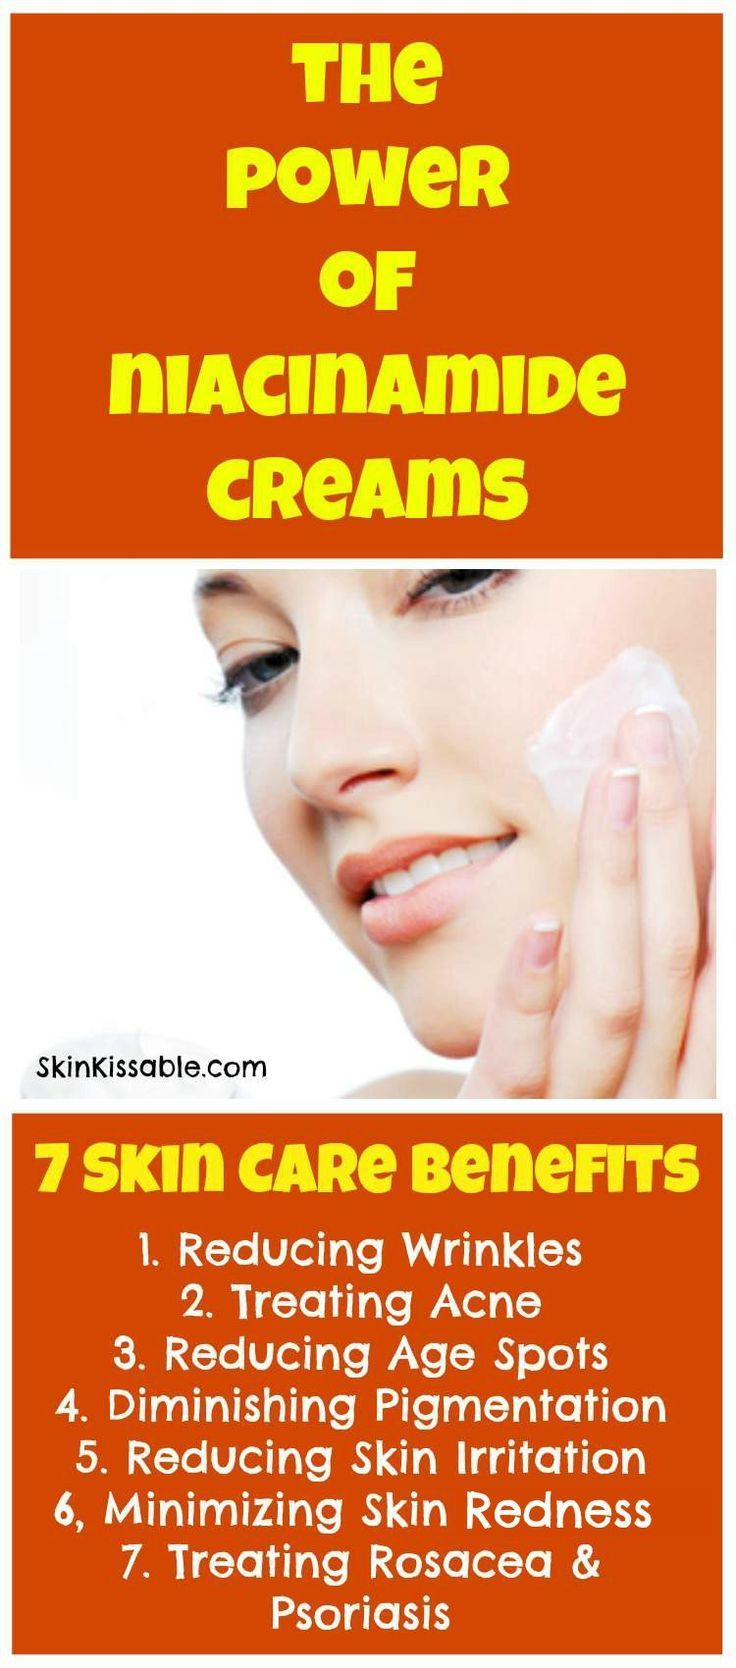 Niacinamide Cream Benefits For Skin Derived From Vitamin B3 Niacin Is A Vitamin With Plenty Of Benefits For Rosacea Skin Care Skin Redness Skin Care Benefits